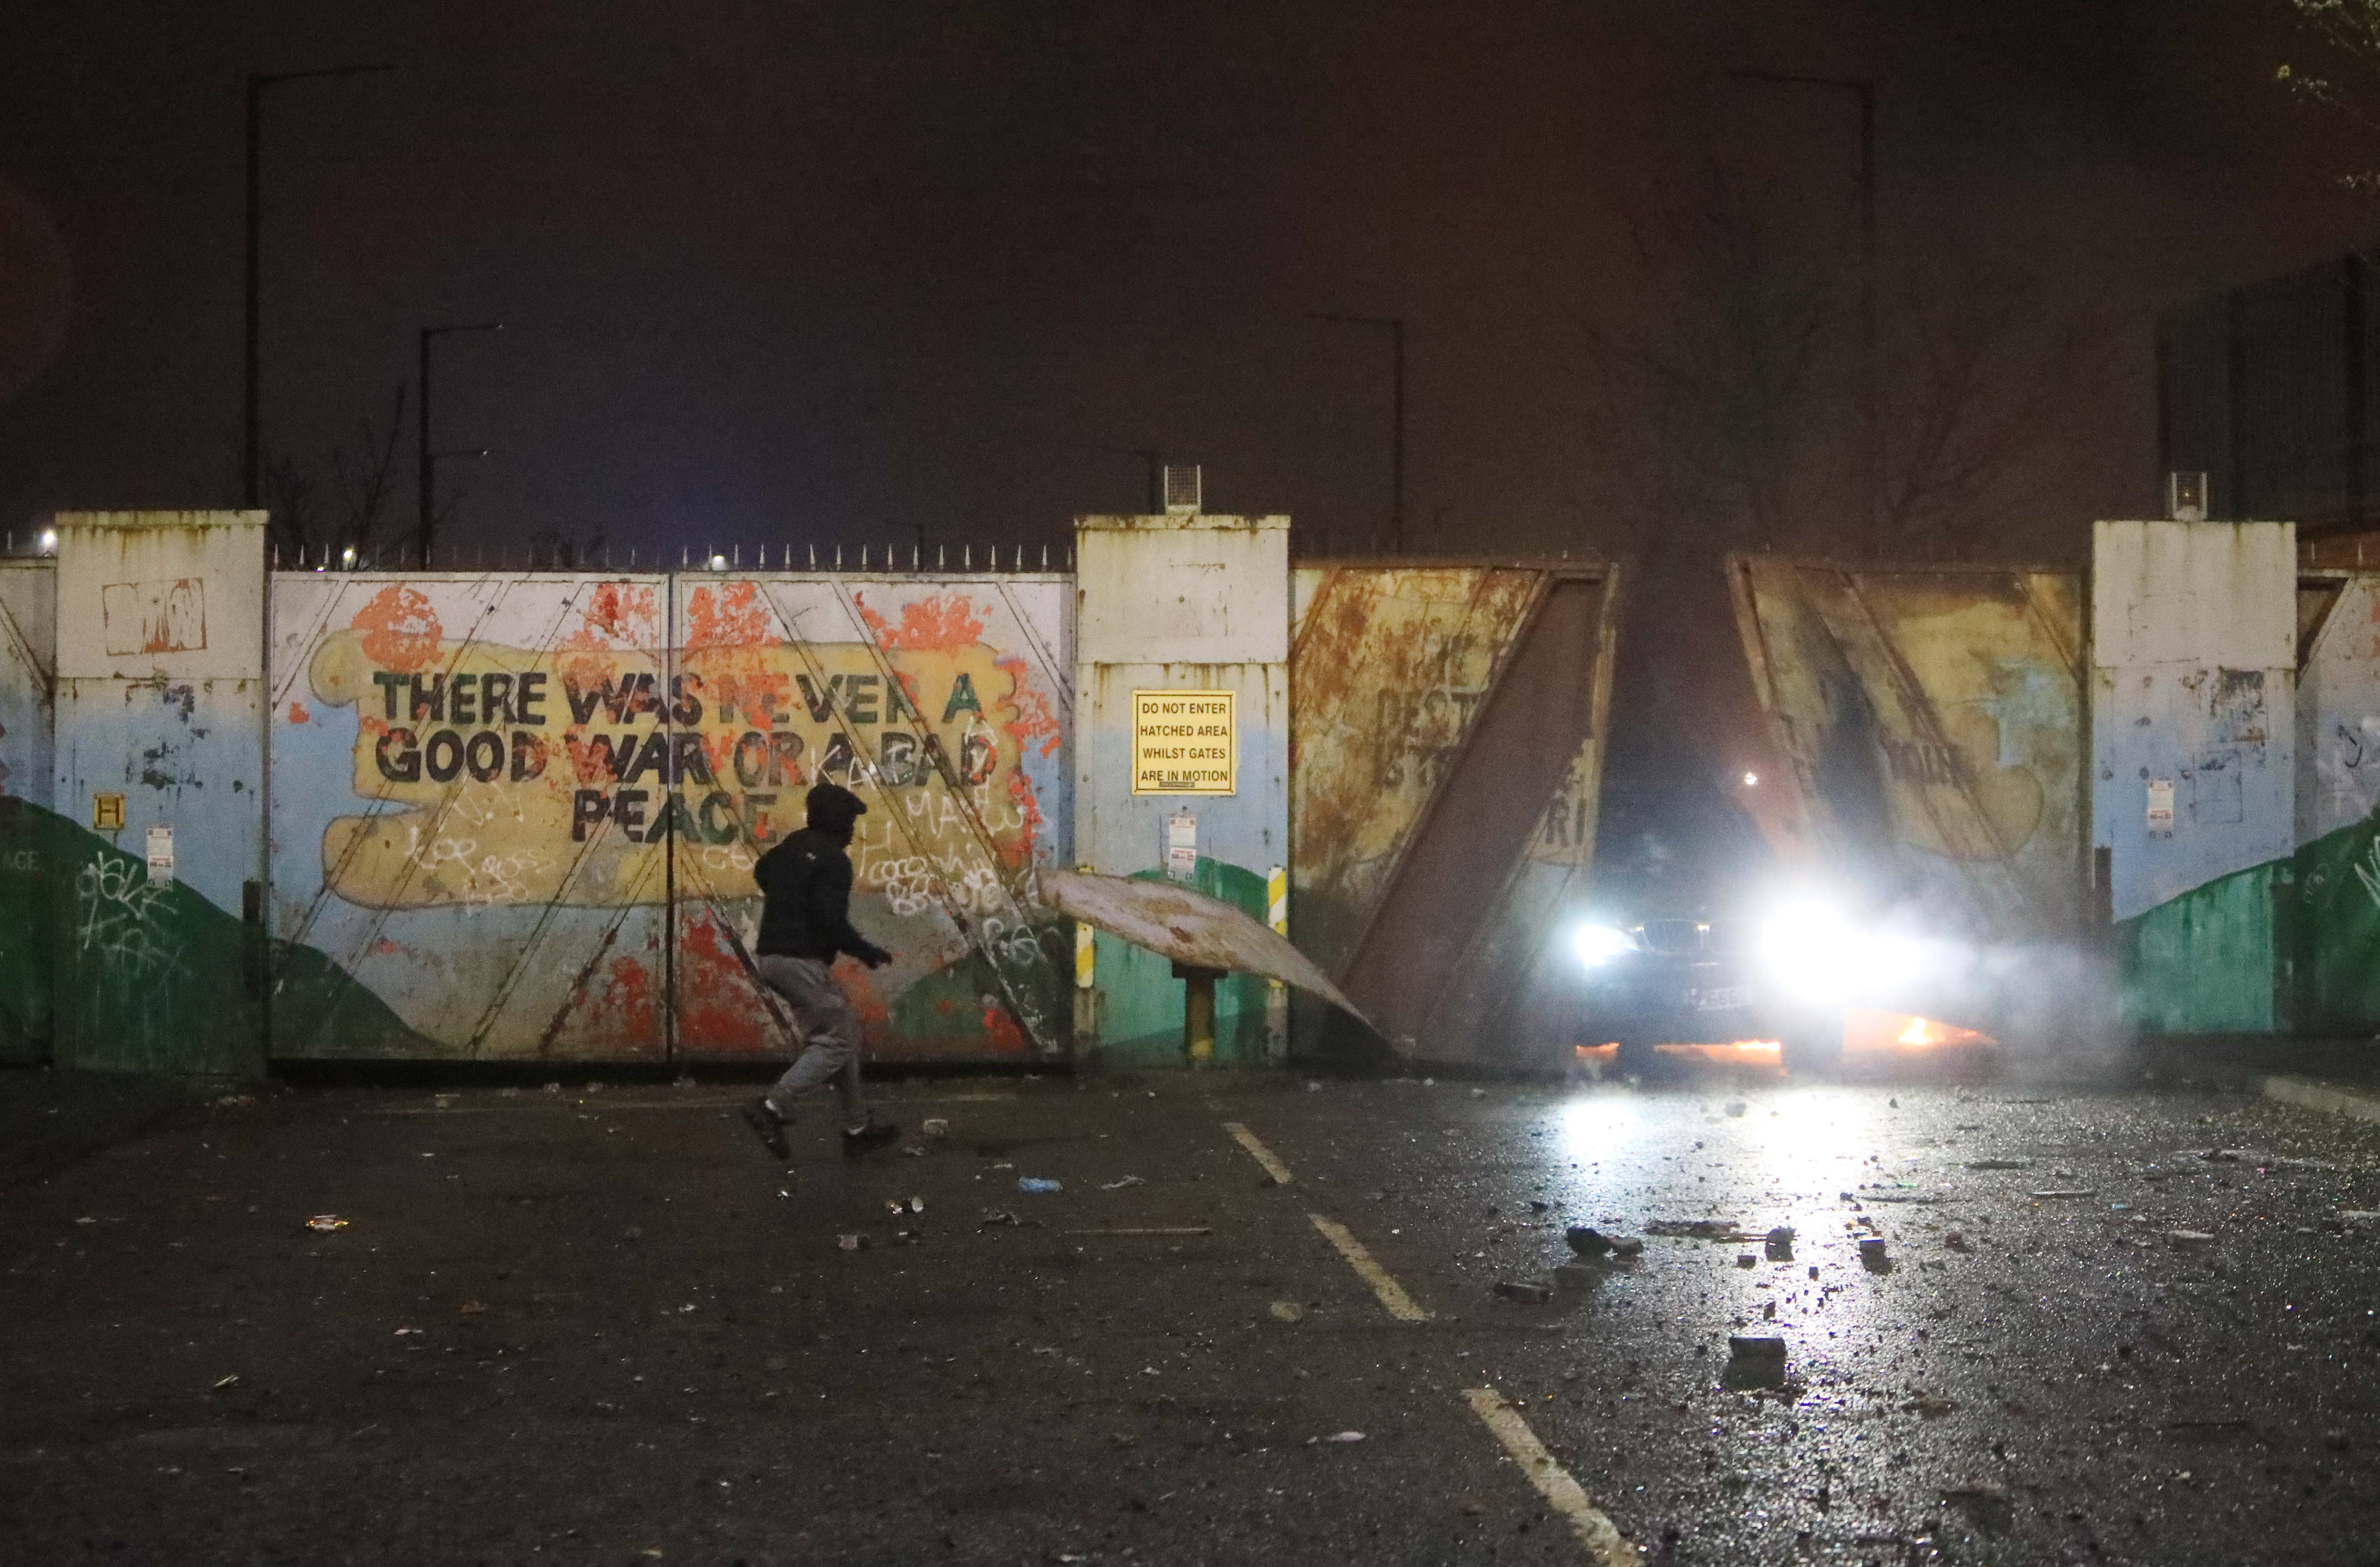 FLASHPOINT: The Lanark Way security gate was centre of disturbances on Wednesday night.